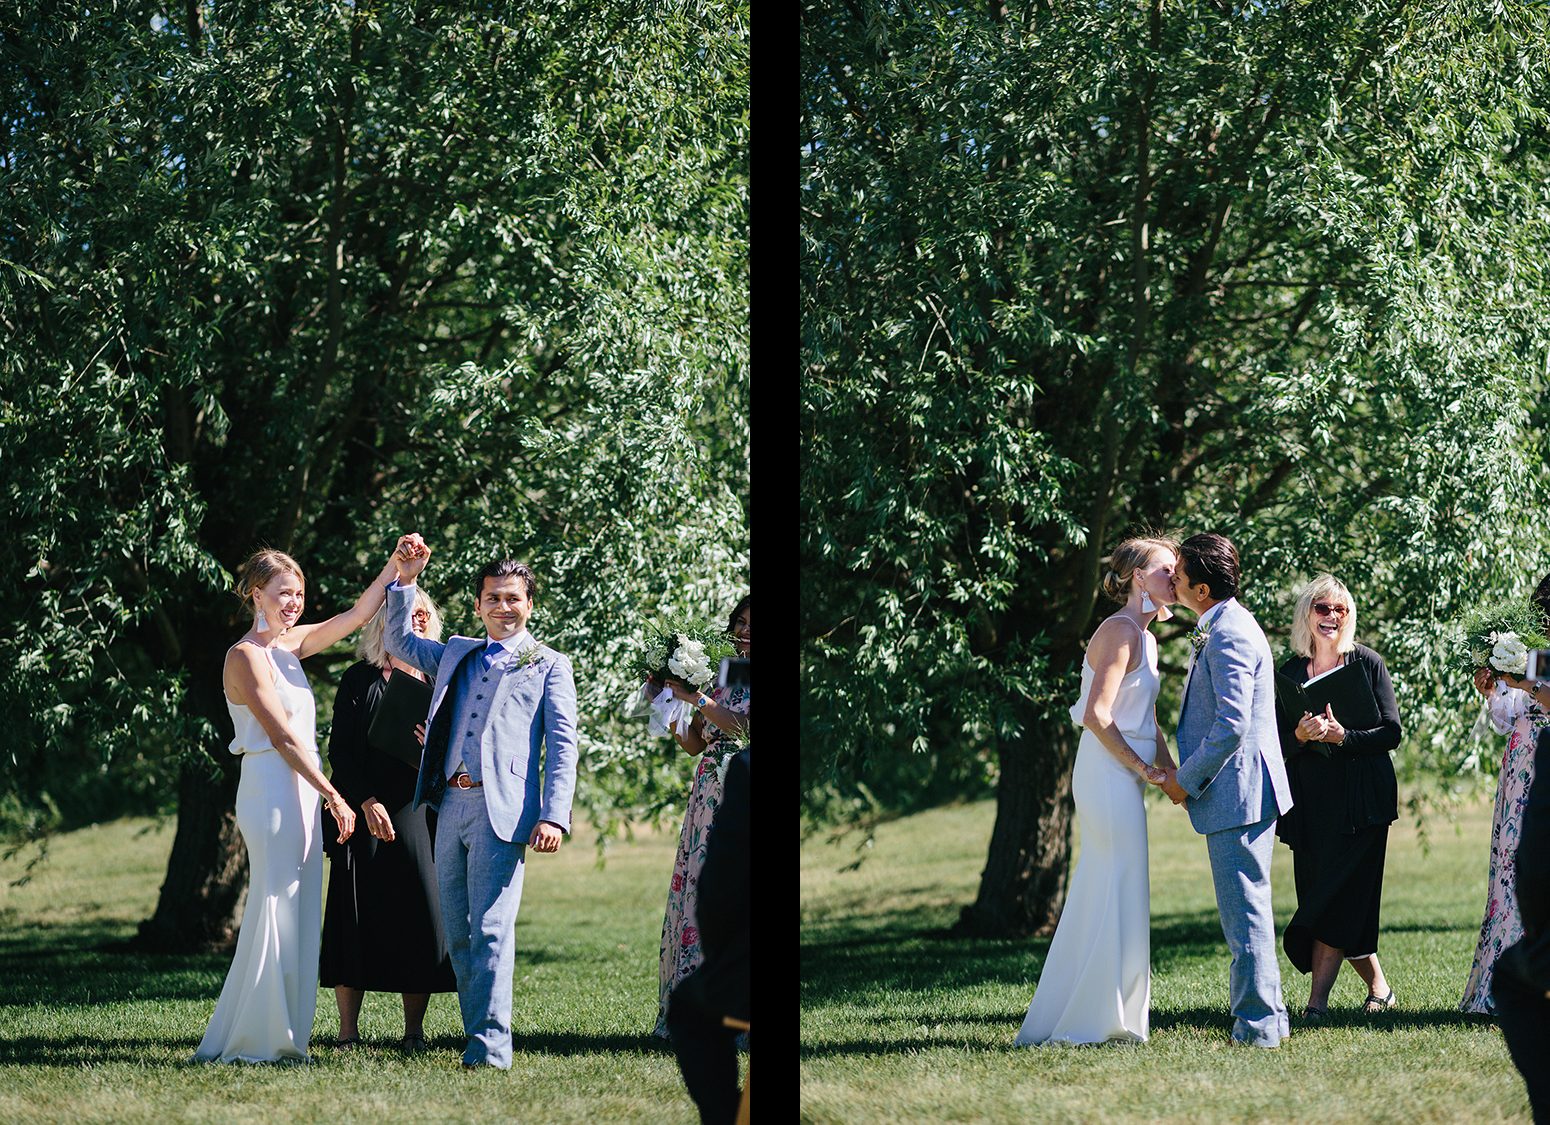 spread-9-Best-Documentary-photojournalistic-wedding-photographers-Toronto-Ontario-Canada-Rural-Country-House-Backyard-Wedding-Ceremony-Vintage-aesthetic-bride-and-groom-just-married-first-kiss.jpg